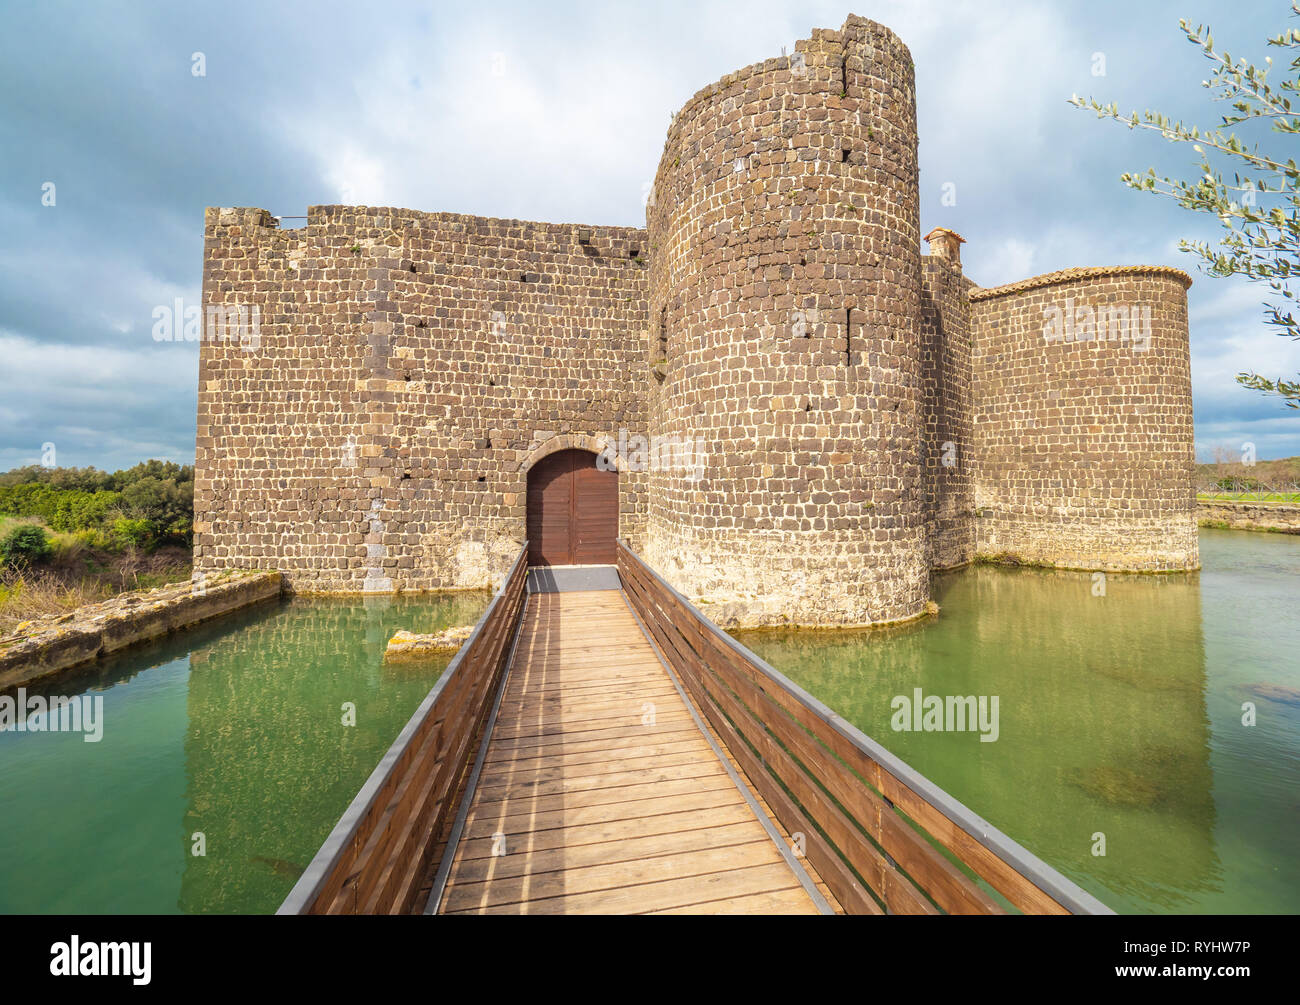 Vulci (Italy) - The medieval castle of Vulci, now museum, with Devil's bridge. Vulci is an etruscan ruins city in Lazio region, on the Fiora river Stock Photo